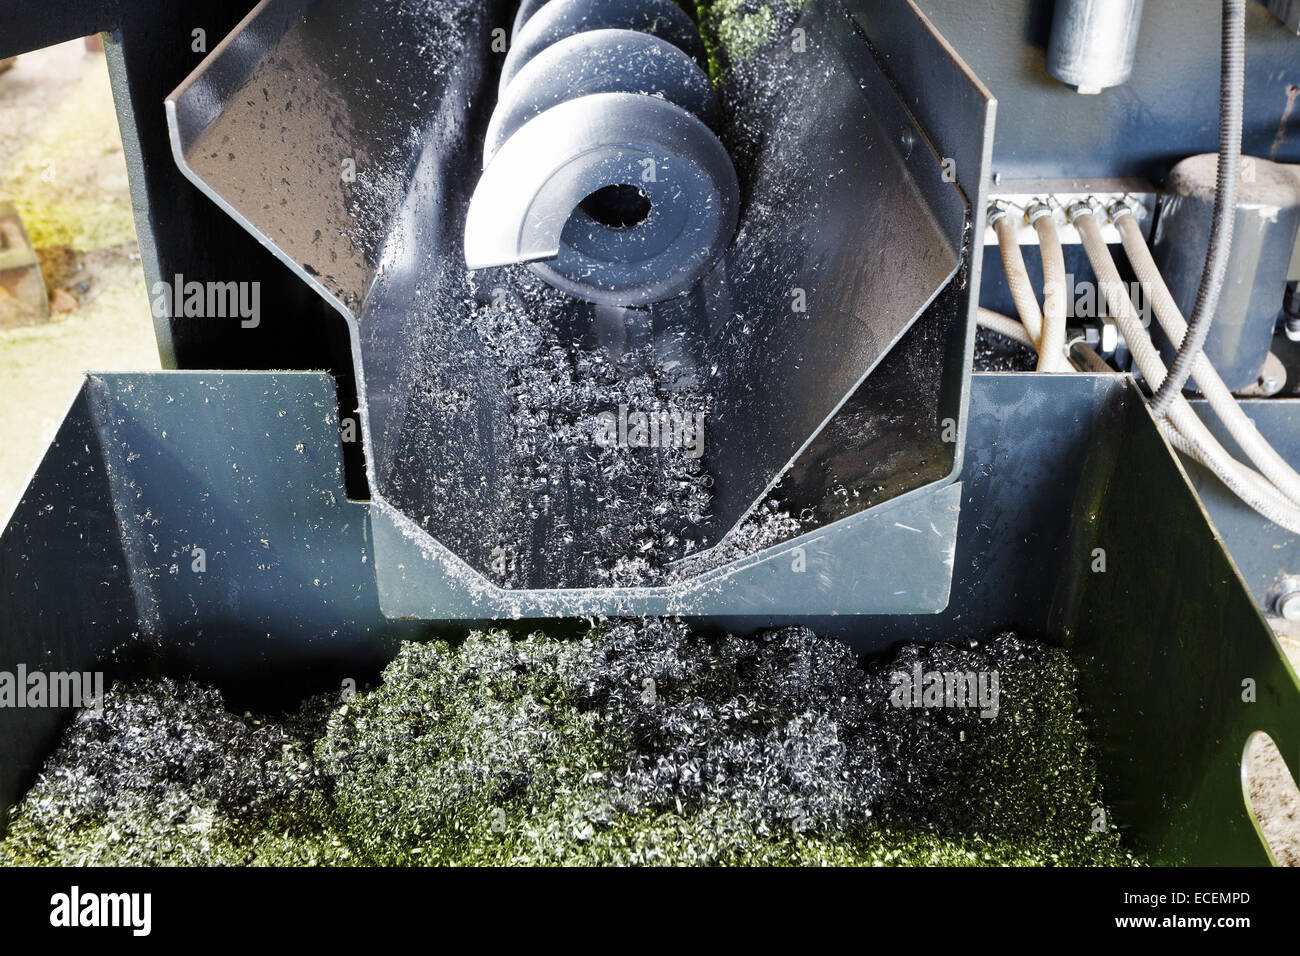 screw and metal turnings from lathe machine close up - Stock Image